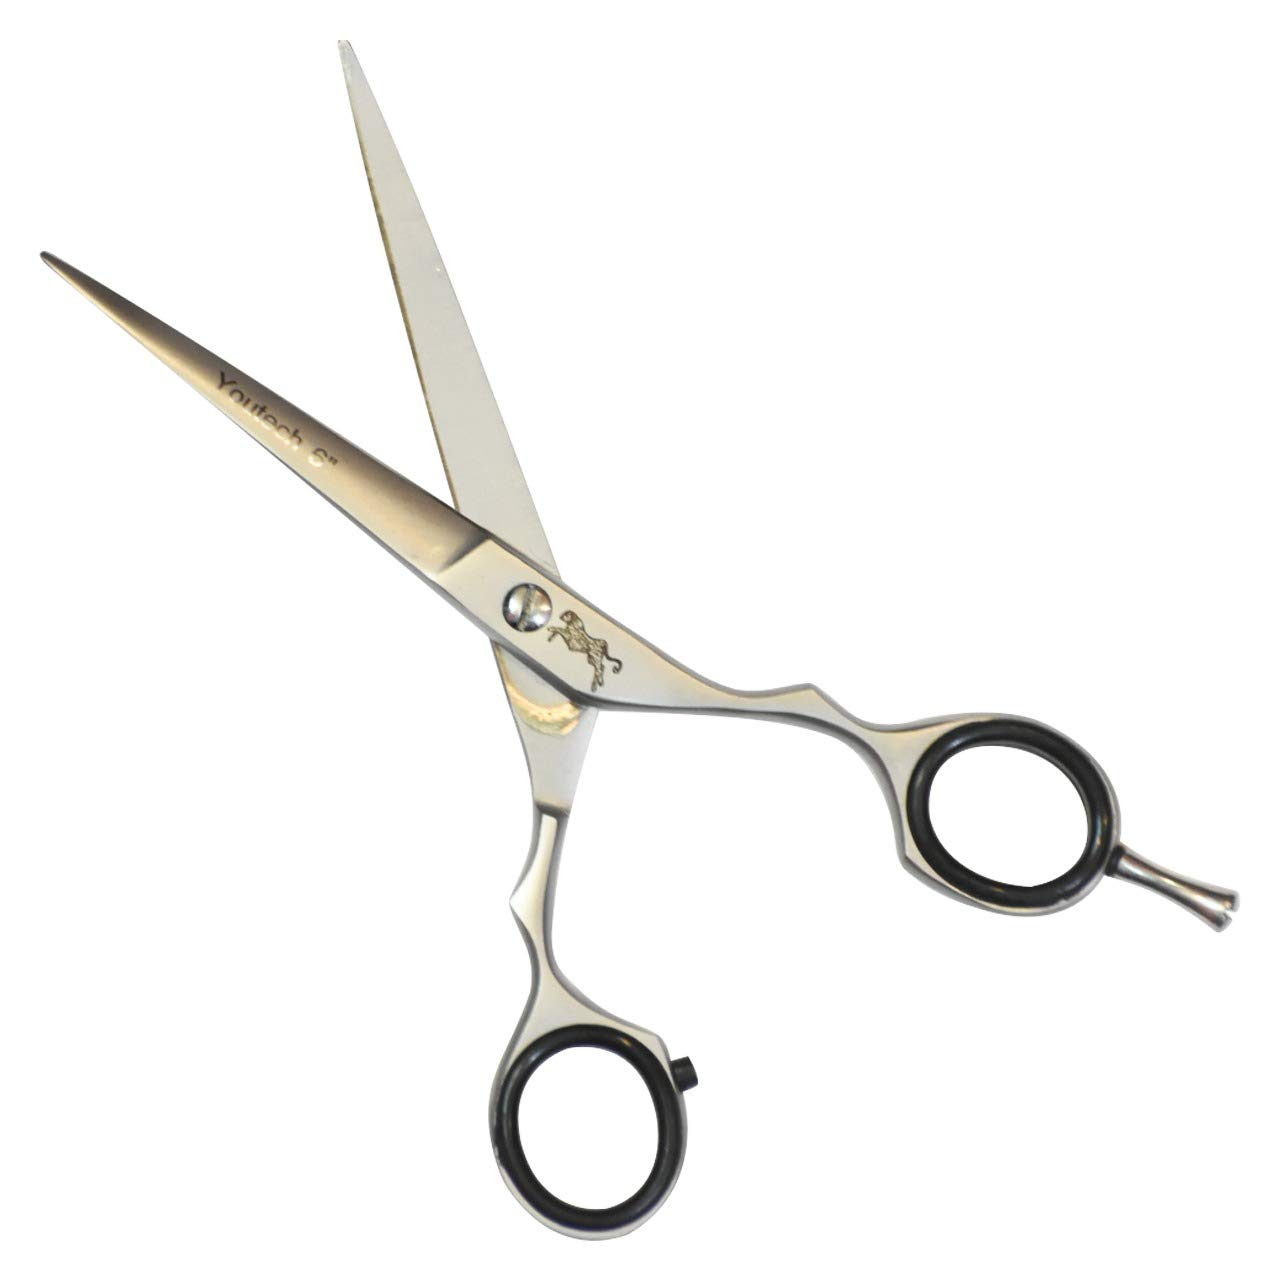 Professional Barber/Salon Razor Edge Hairdressing Scissors/Shears  (12.12-Inch) - Ice Tempered Stainless Steel Reinforced with Teflon Coating to  Resist